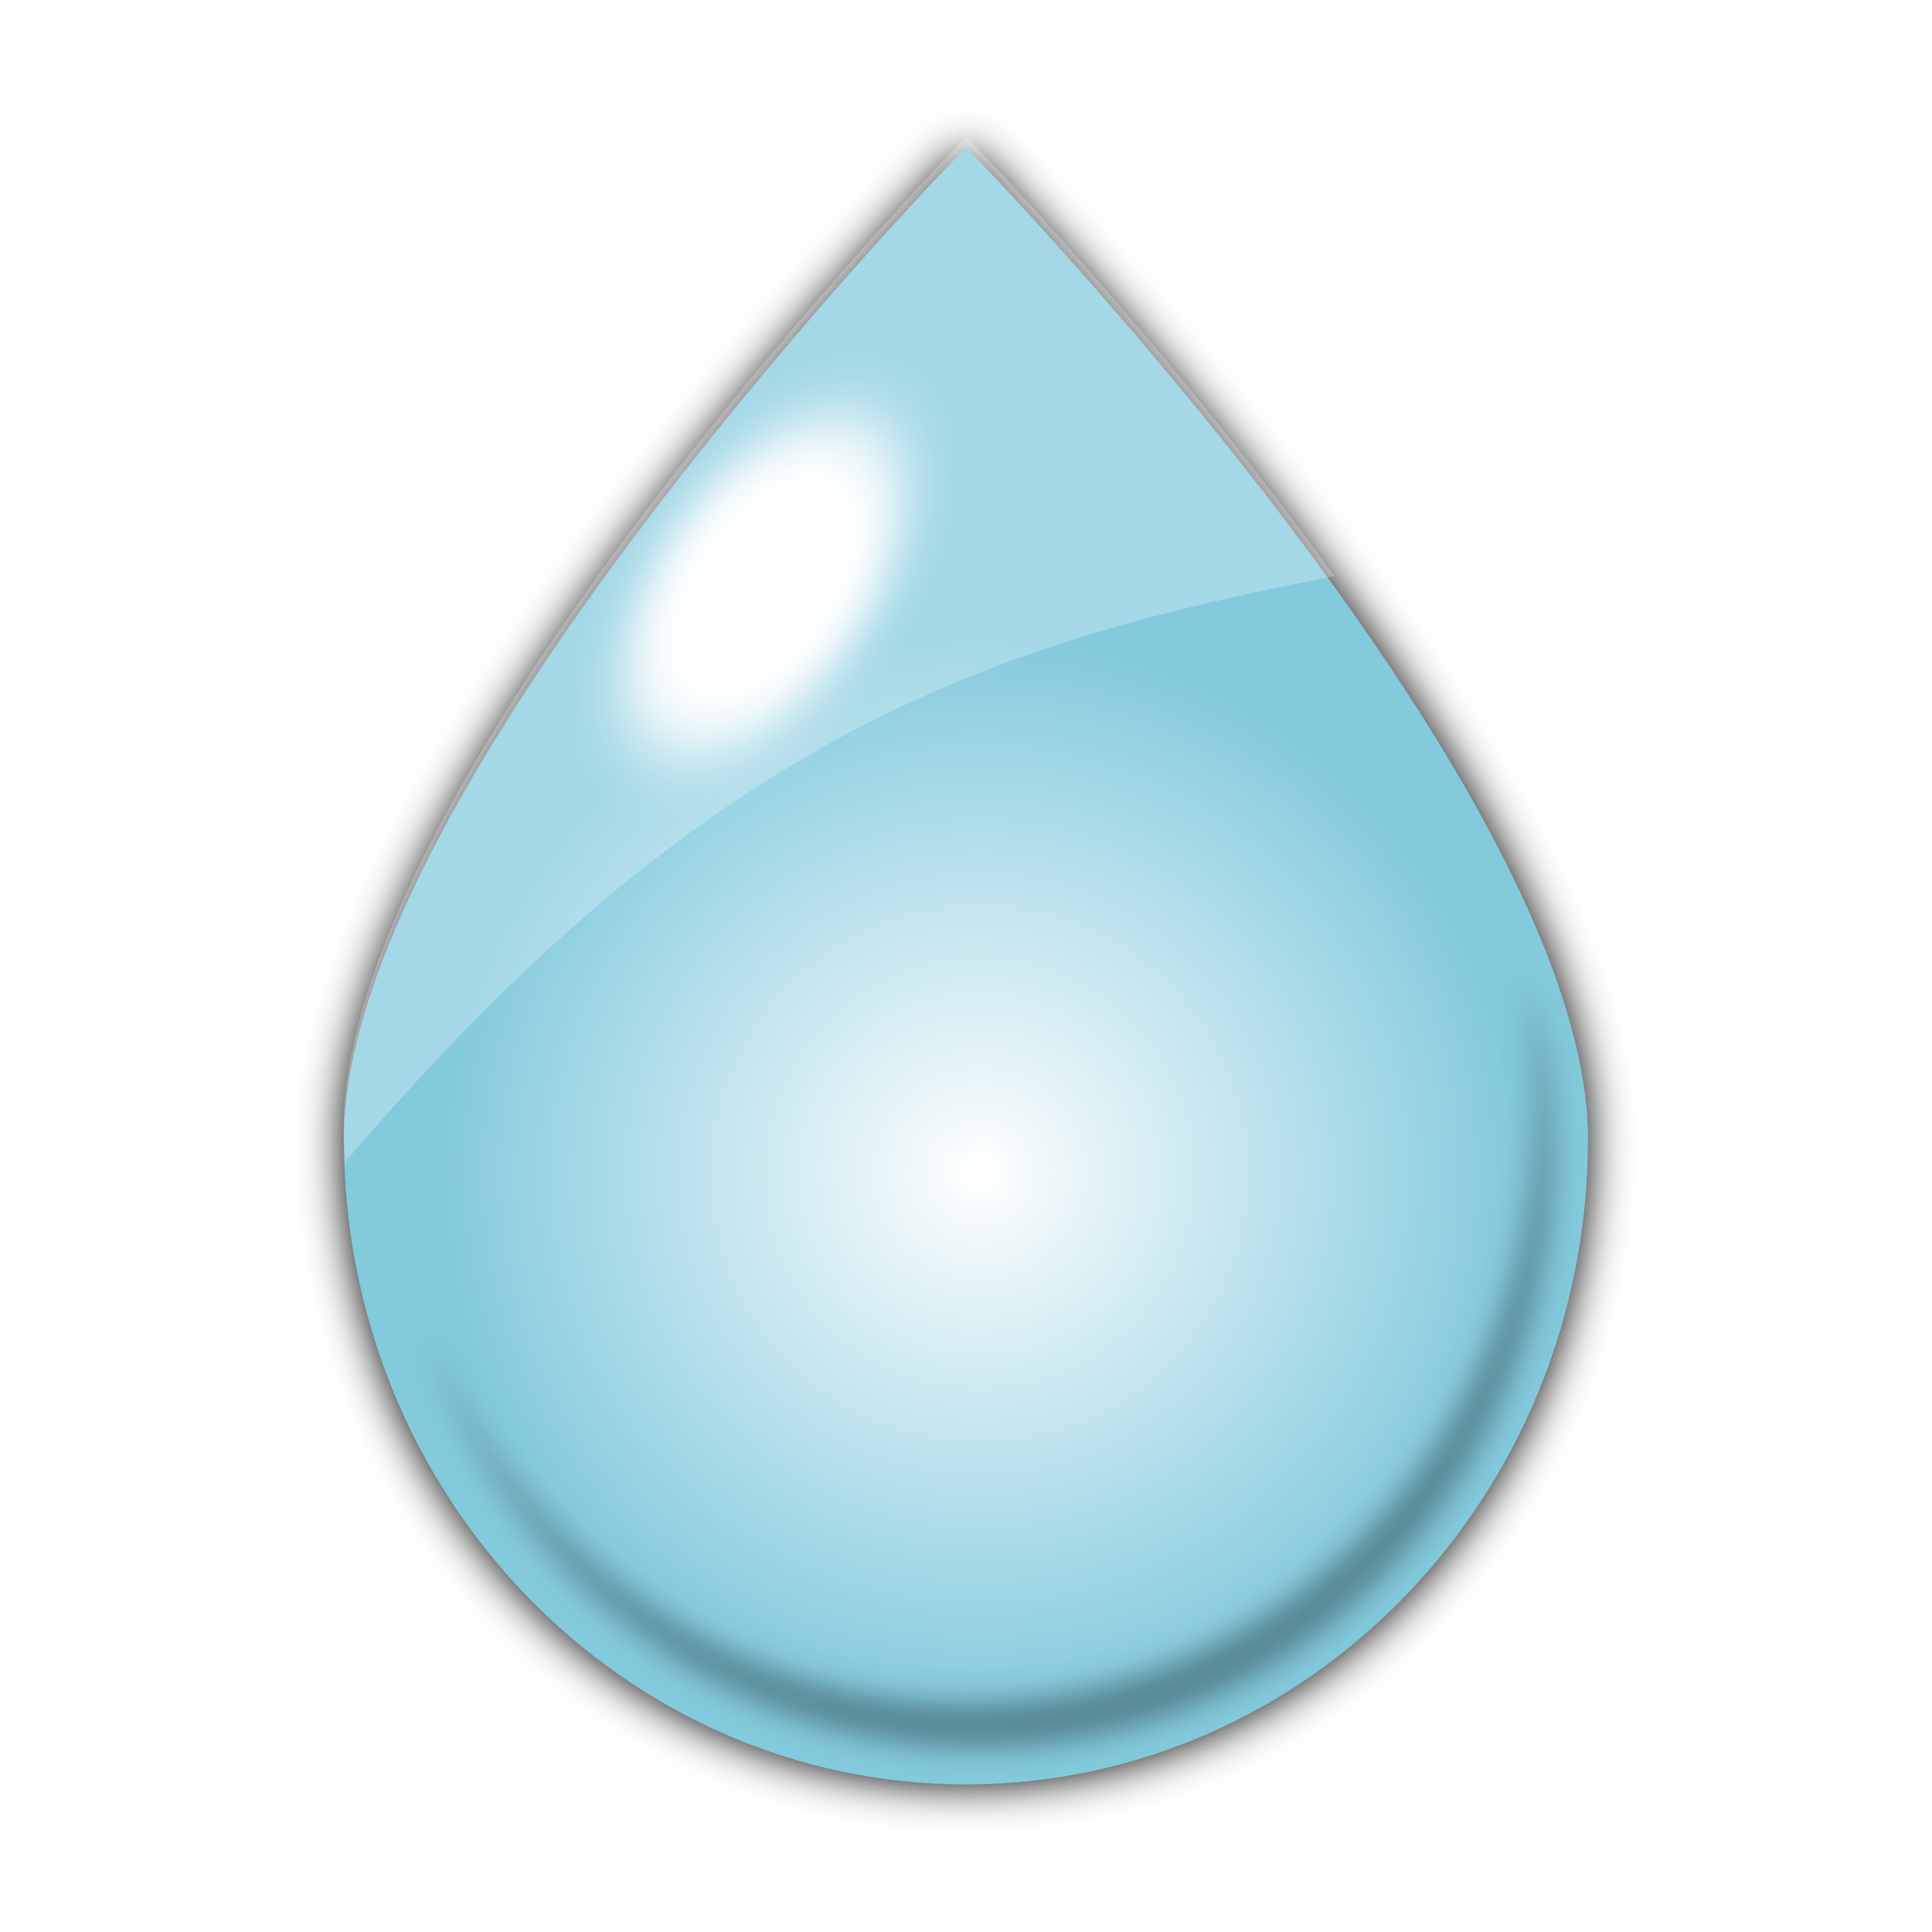 2400x2400 Blue Water Clipart Raindrop 2528764